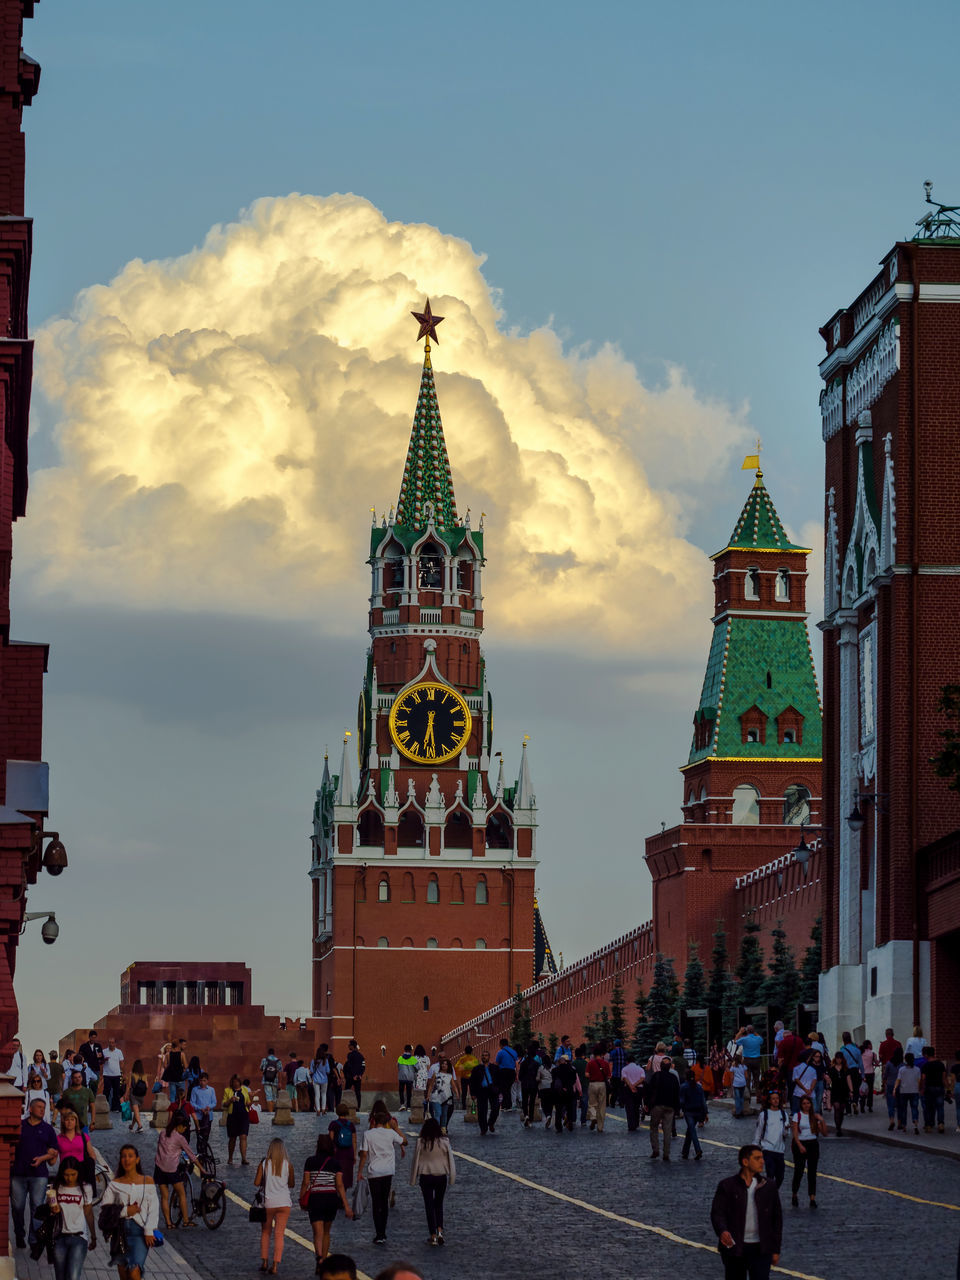 large group of people, architecture, sky, real people, tourism, built structure, building exterior, clock tower, cloud - sky, men, women, outdoors, day, city, clock, people